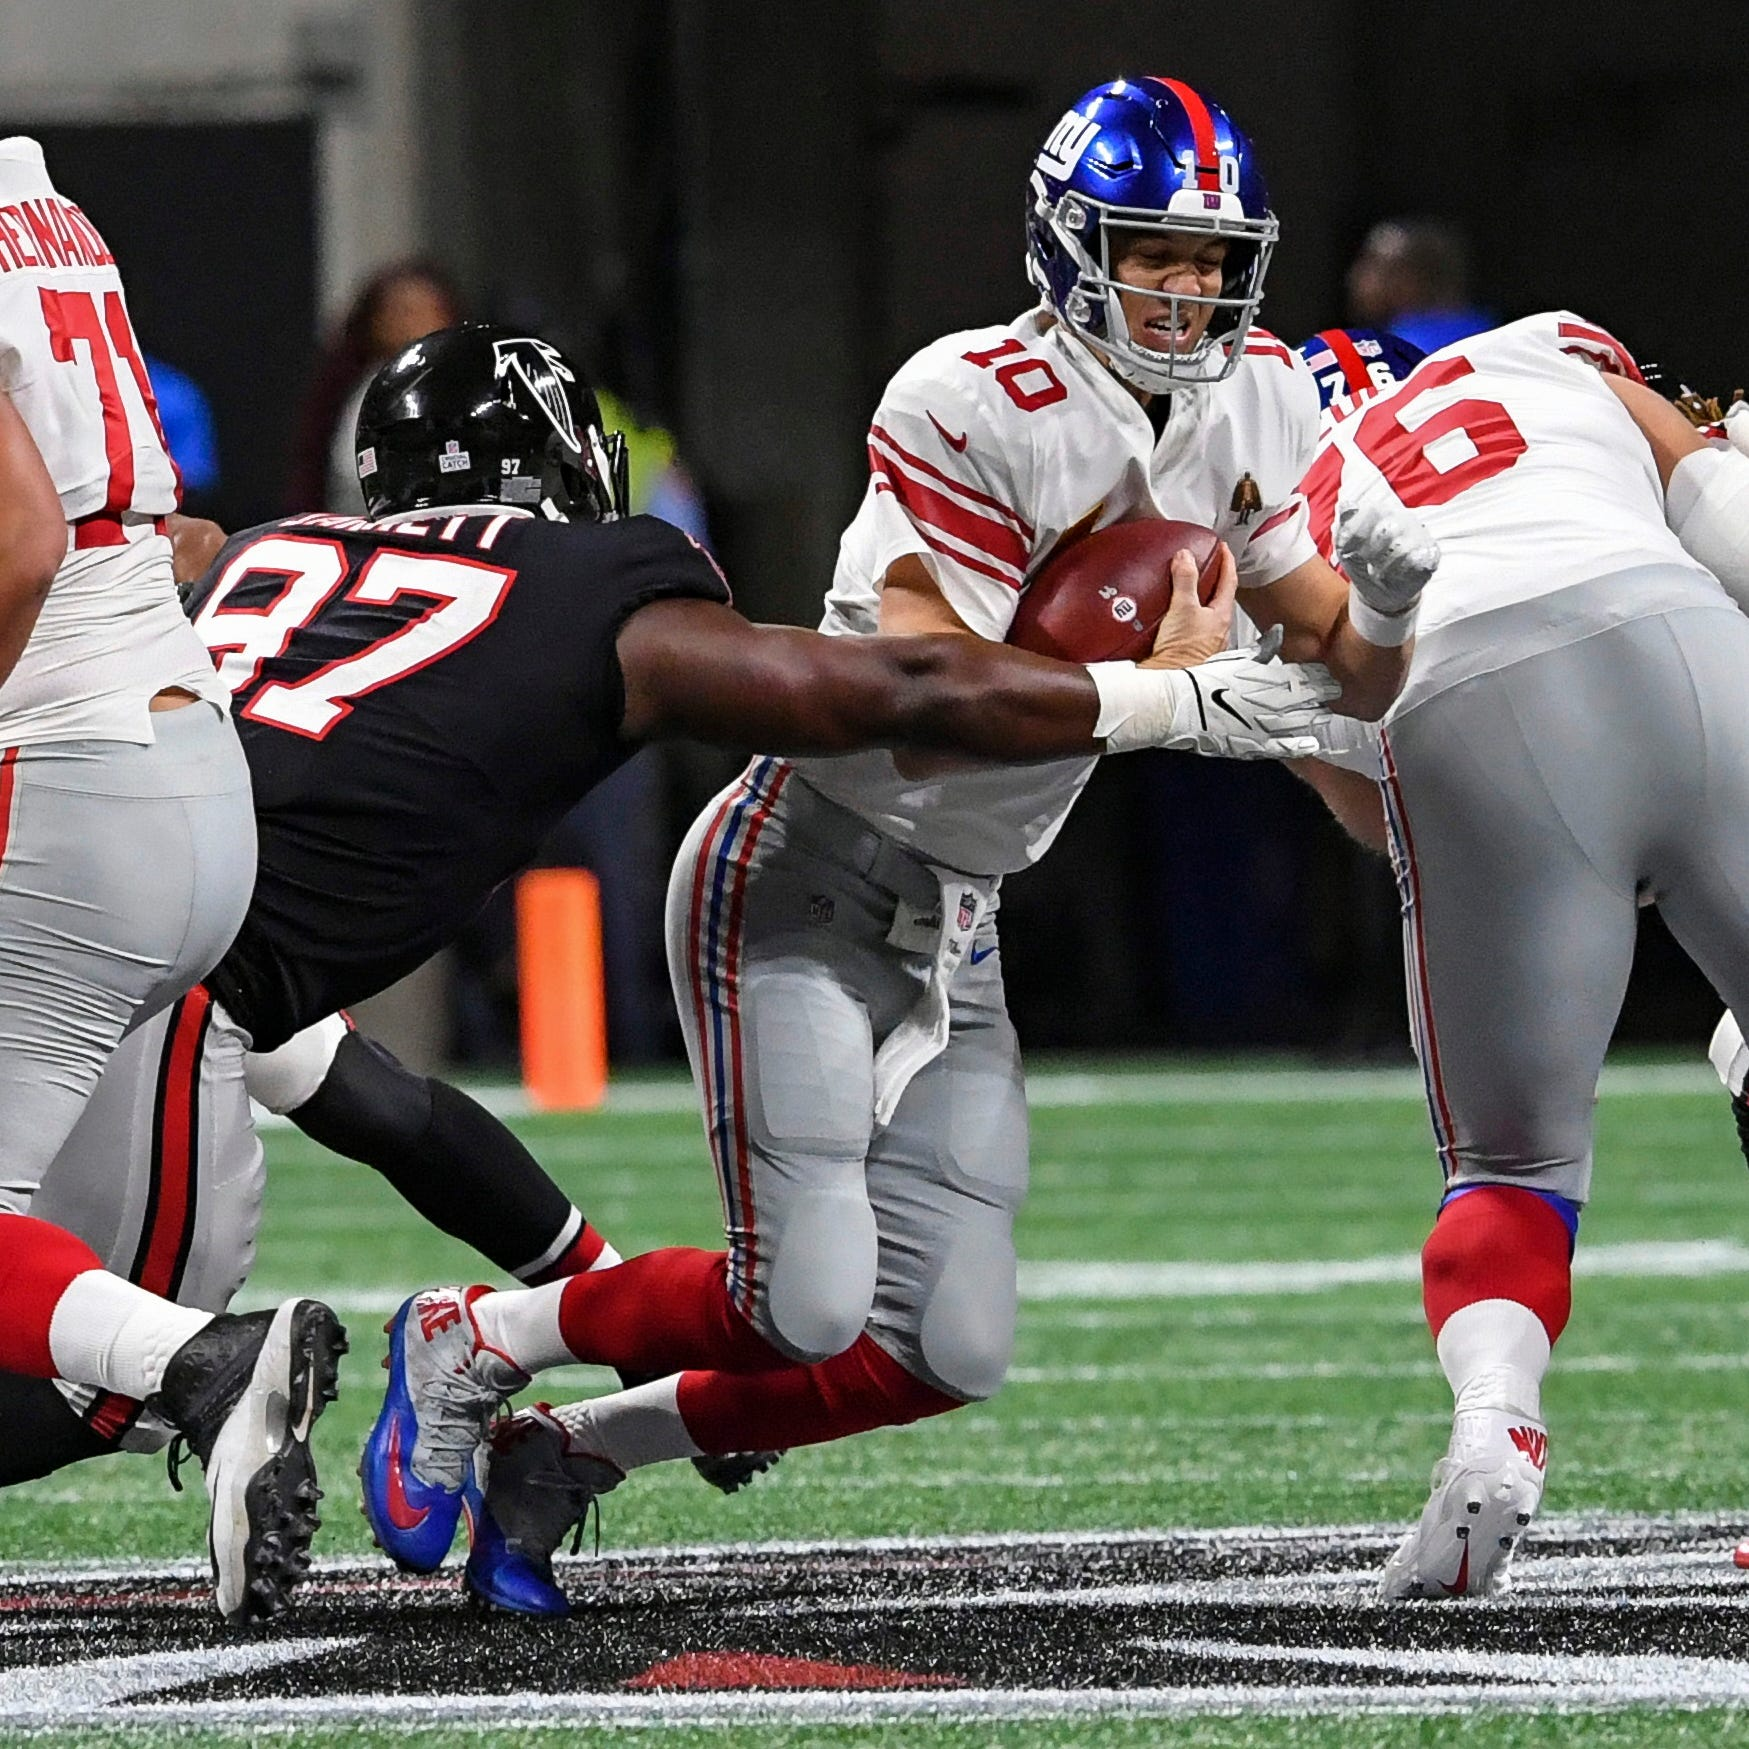 NY Giants vs. Atlanta Falcons: Too little, too late again as Big Blue comes up short